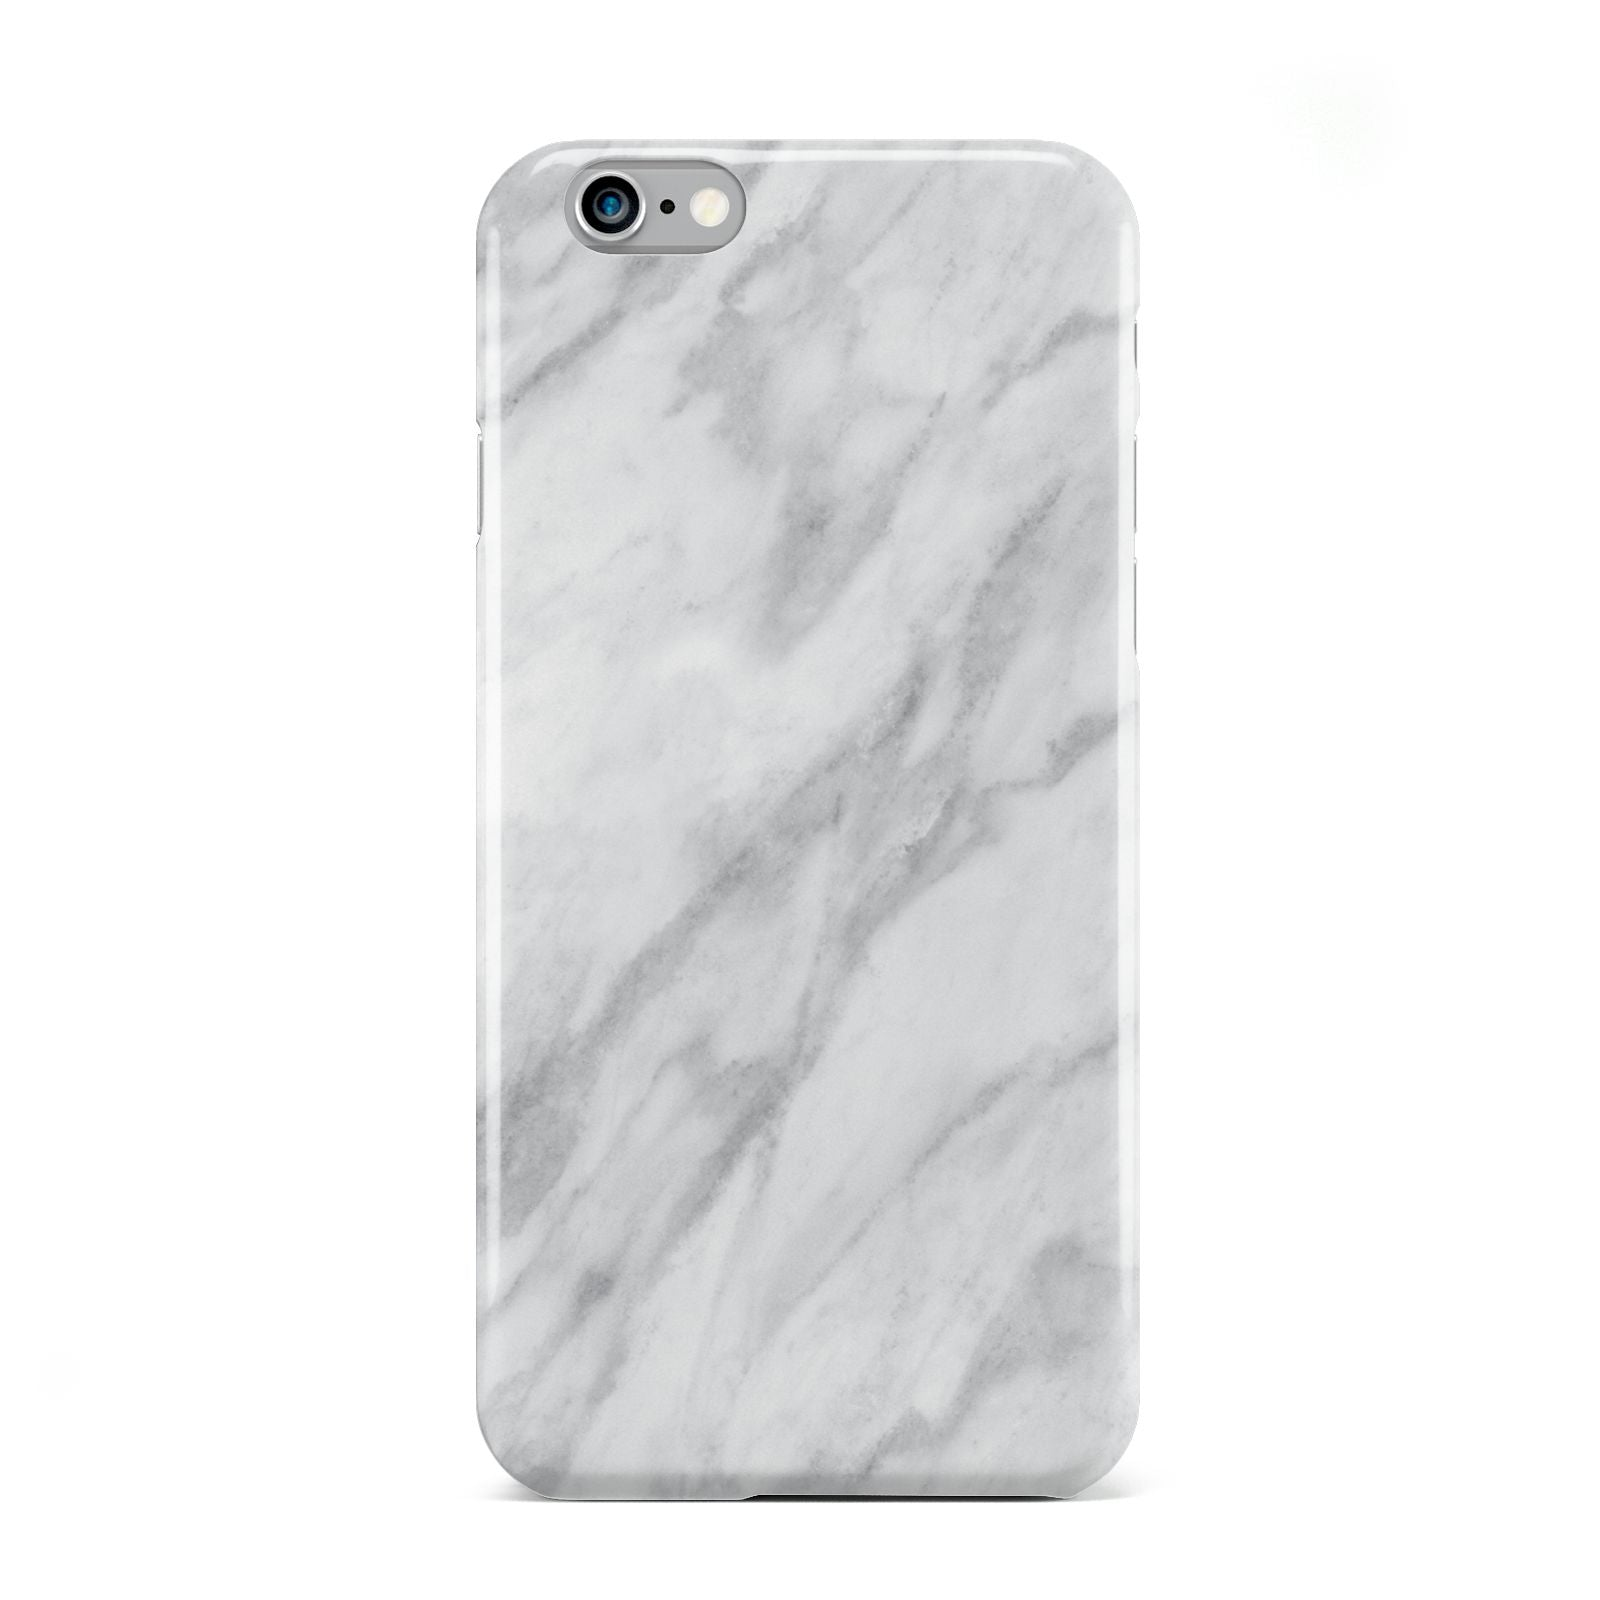 Faux Marble Effect Italian Apple iPhone 6 Case